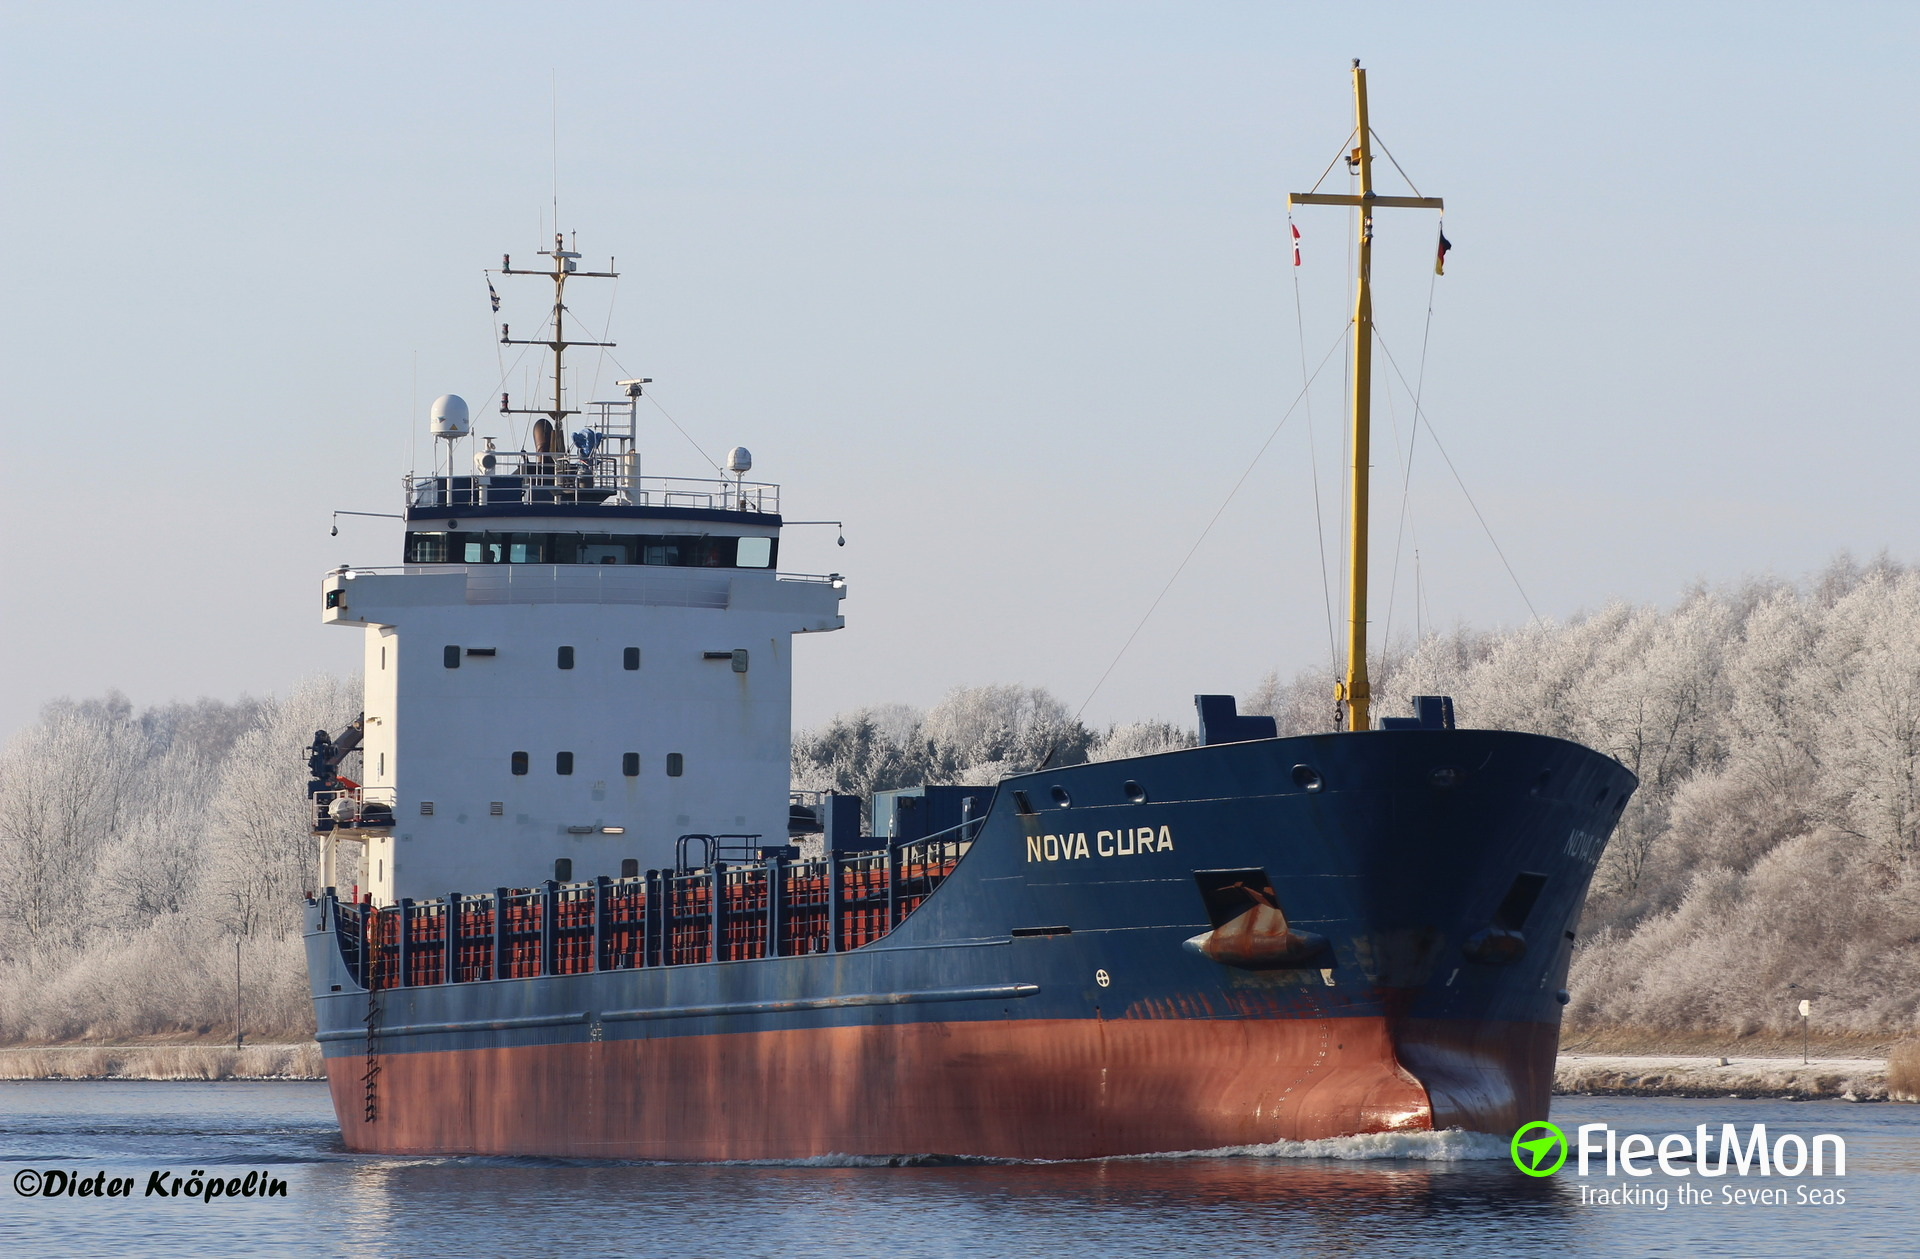 Dutch freighter NOVA CURA aground: UPDATE Apr 21